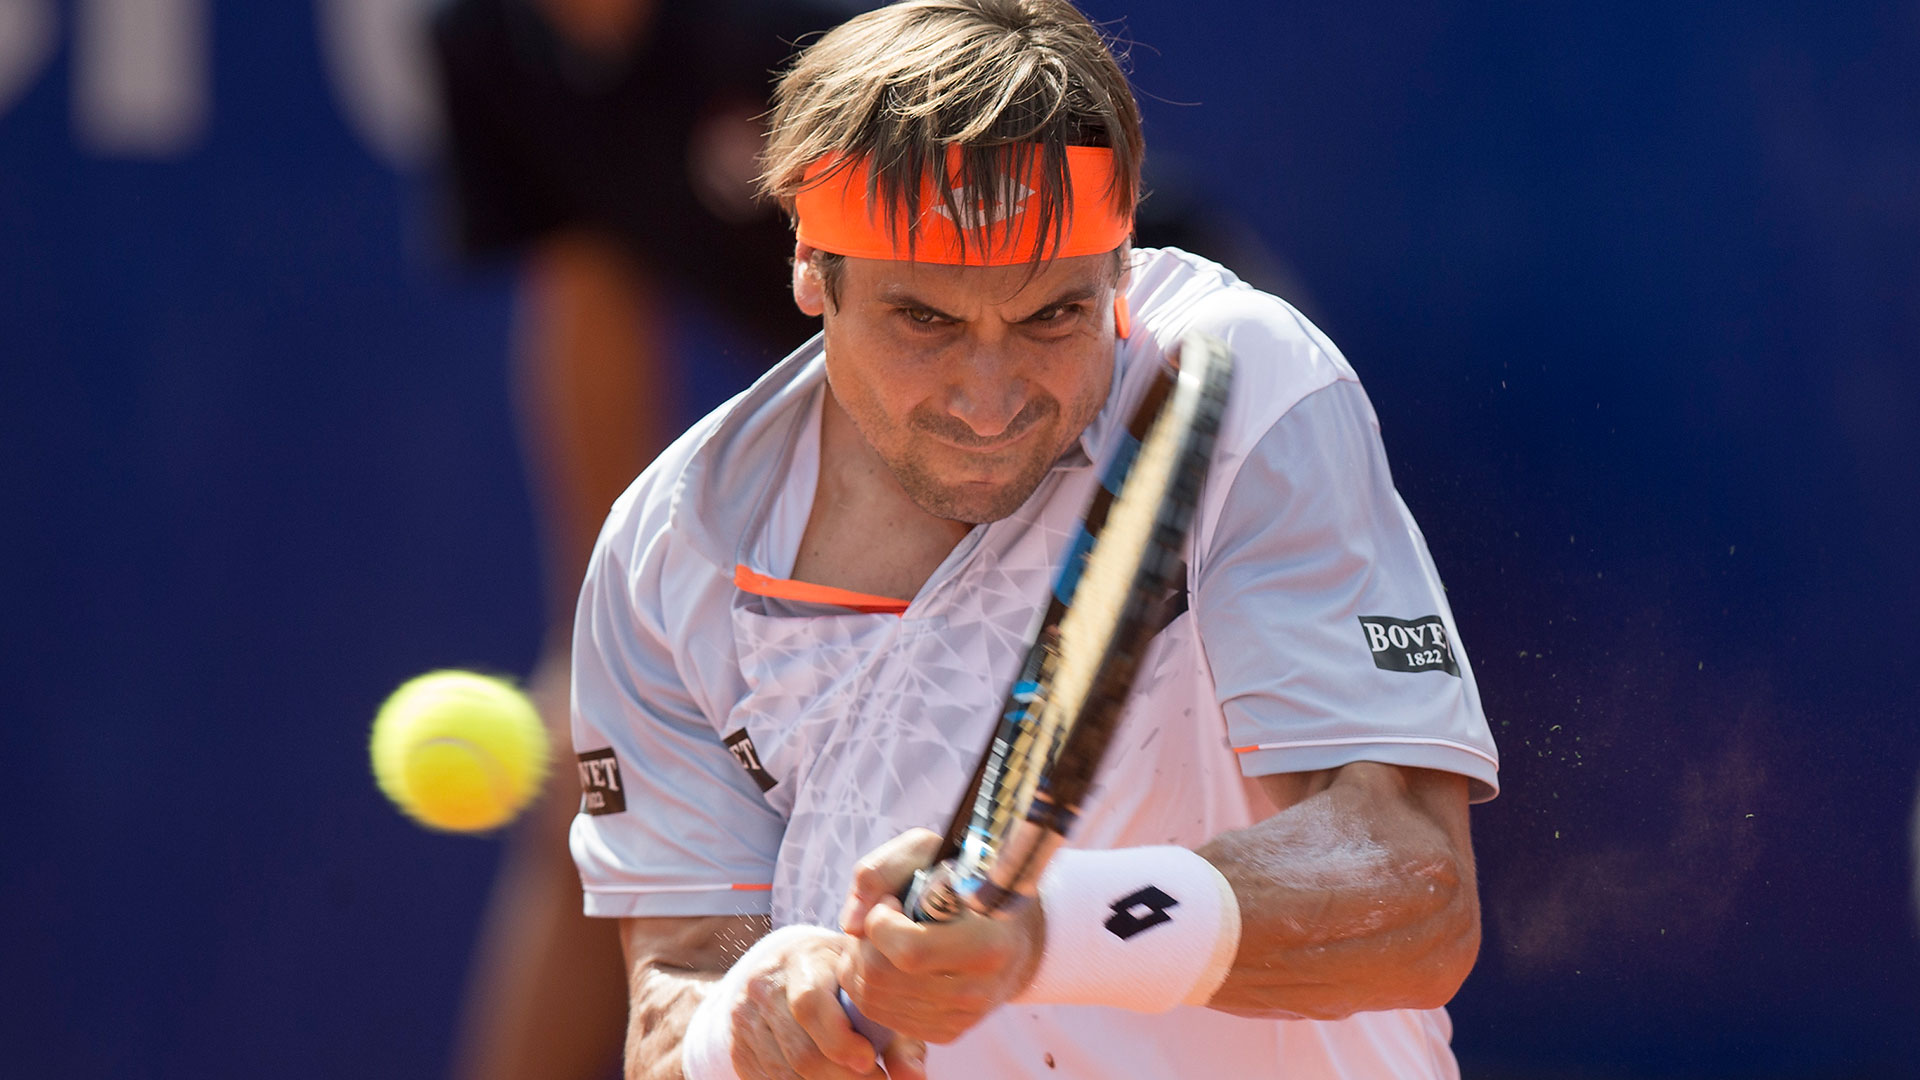 Ferrer hits a backhand in Buenos Aires